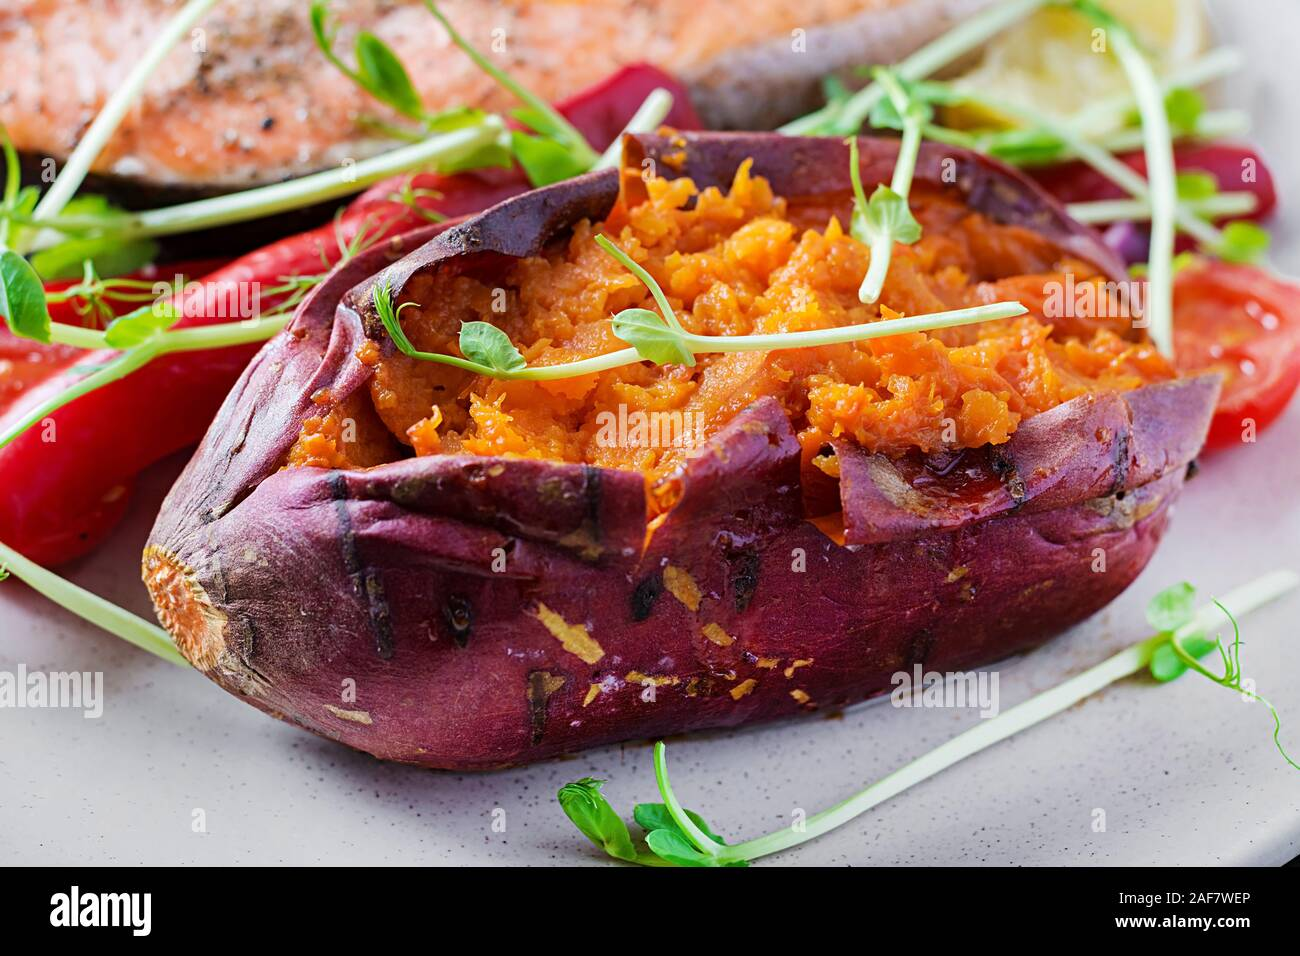 Baked sweet potatoes with butter. Vegetarian cuisine. Diet menu. Stock Photo